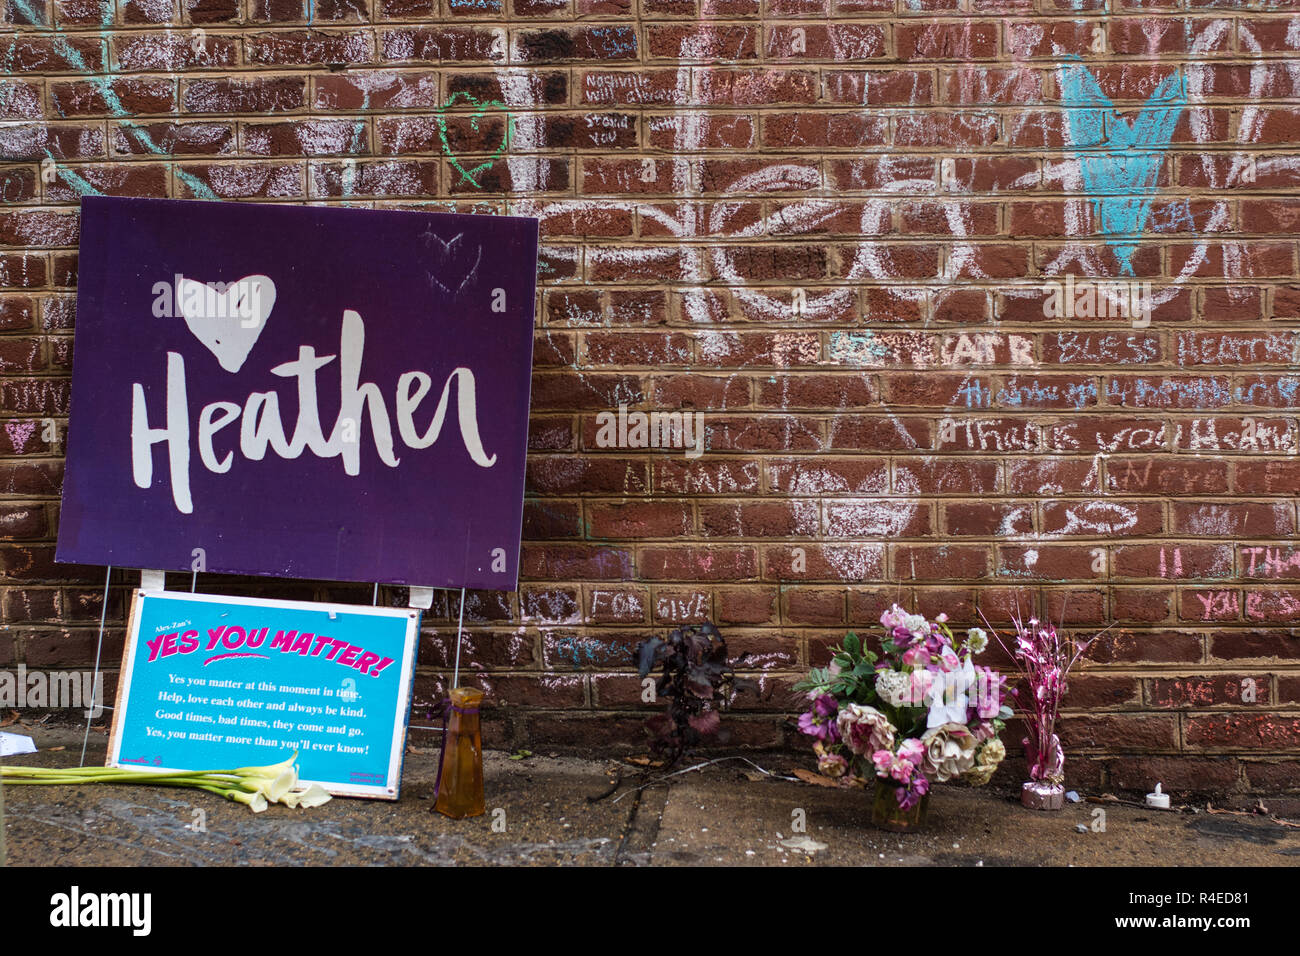 Charlottesville , Virginia United States November 26 , 2018 Jury selection started on Monday for the murder of Heather Heyer on August 12 , 2017 ant the Charlottesville Unite The Right rally. James Alex Fields Junior was indicted on multiple charges for the incident. Credit: F42PIX/Alamy Live News - Stock Image